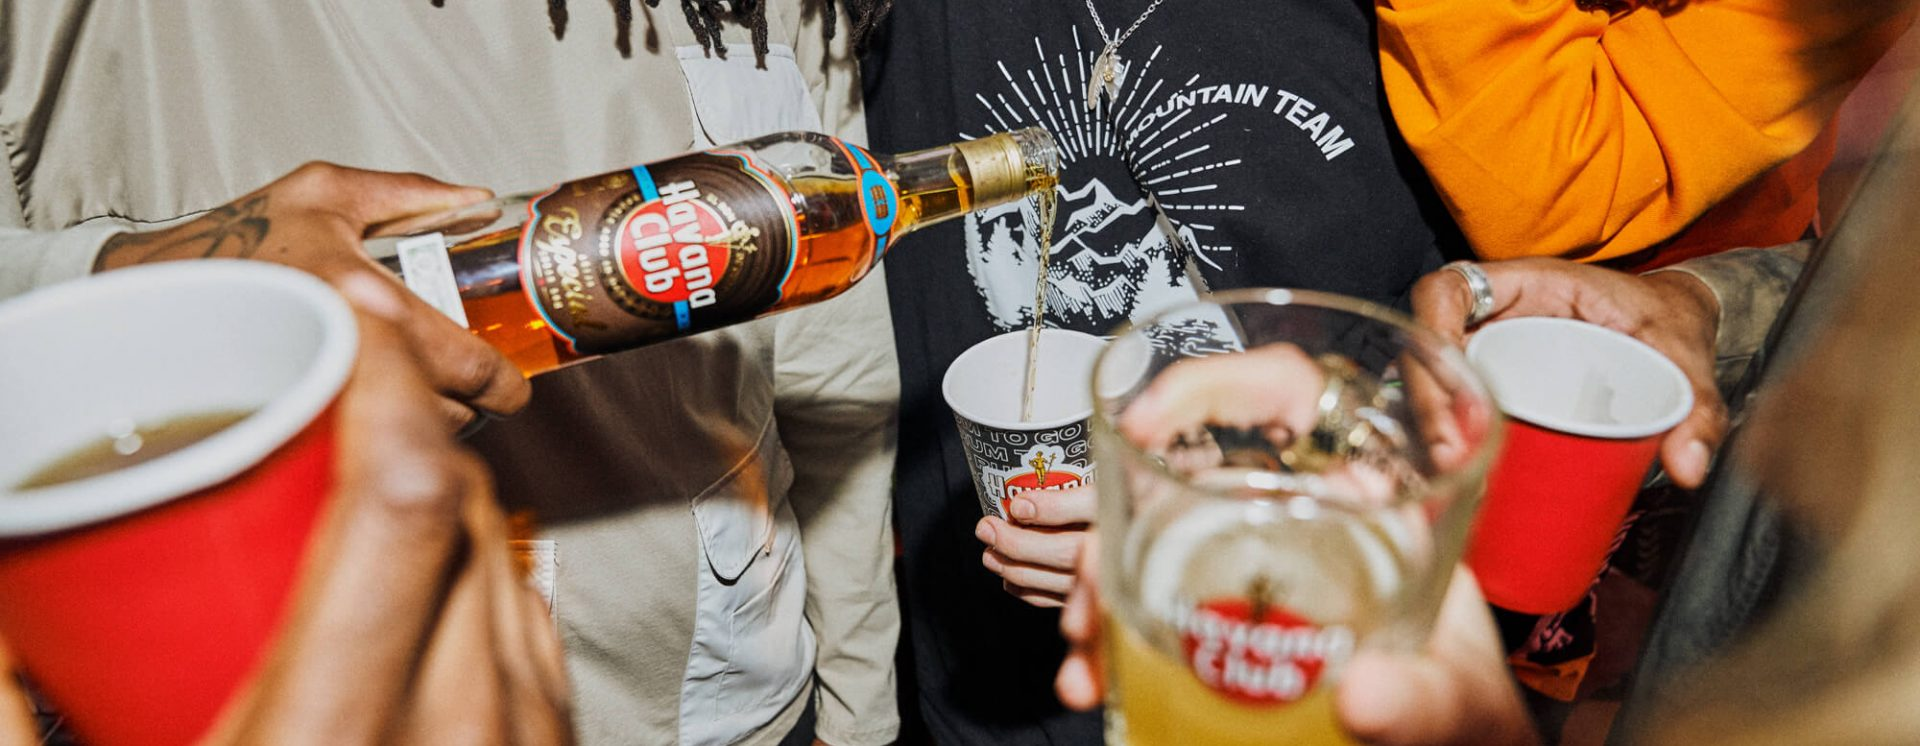 Party at home - Guy serving Havana Club Especial in a glass